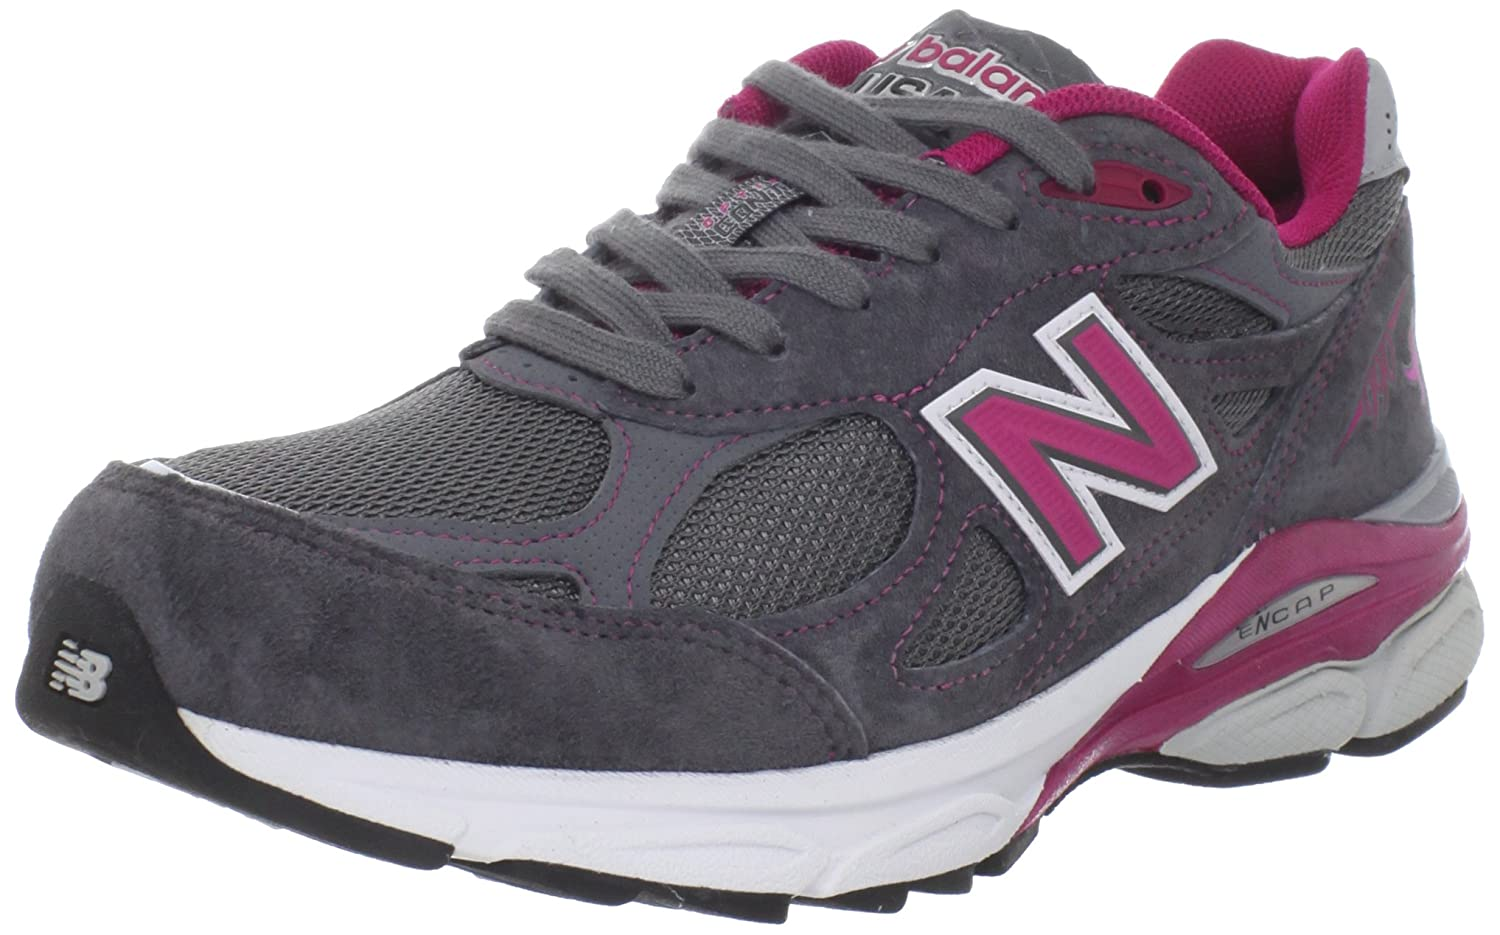 New Balance Women's 990V3 Running Shoe B005P21VE2 6.5 B(M) US|Grey/Pink